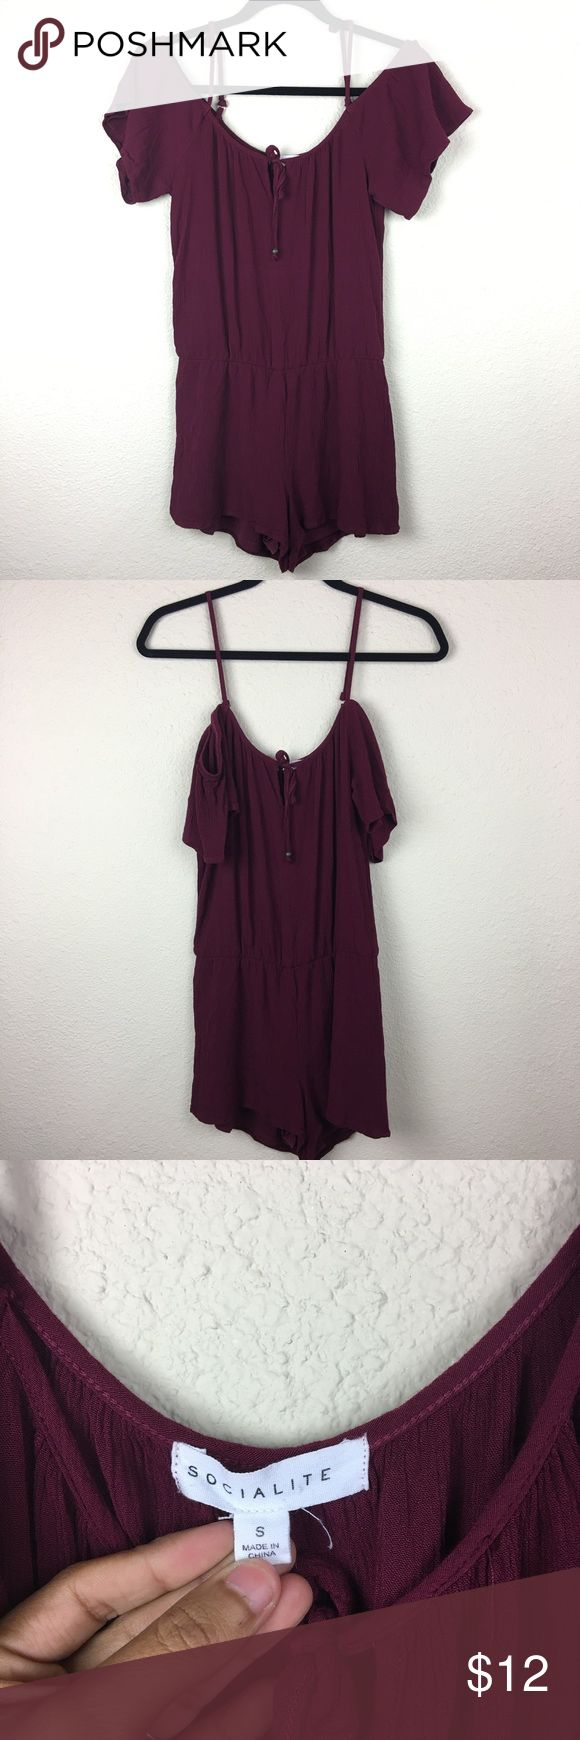 SOCIALITE Burgundy Off The Shoulder Romper This romper is surer cute! In good condition. Perfect for any season and can definition be dressed up or down! socialite Dresses Mini